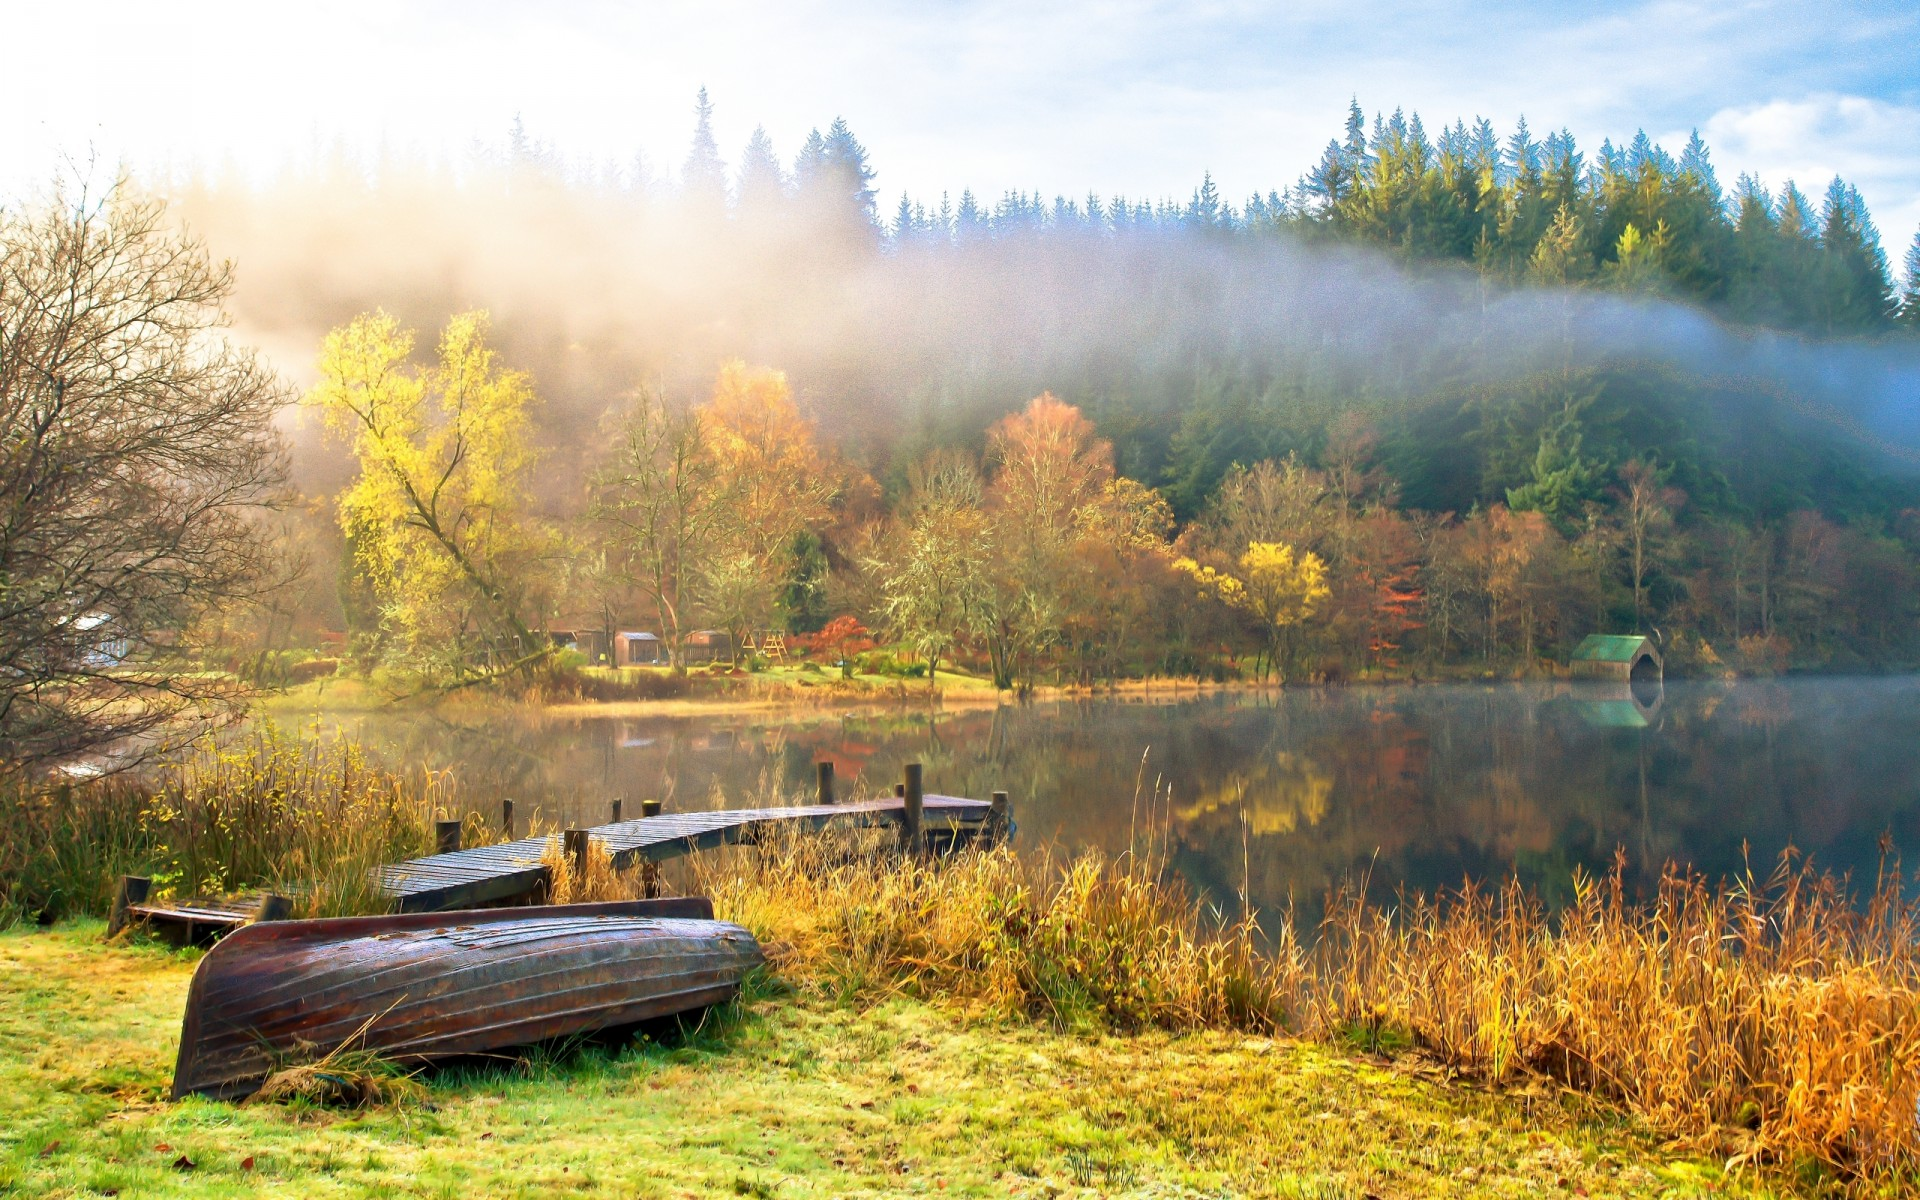 nature landscape sky clouds lake water boats trees autumn fog reflection fall